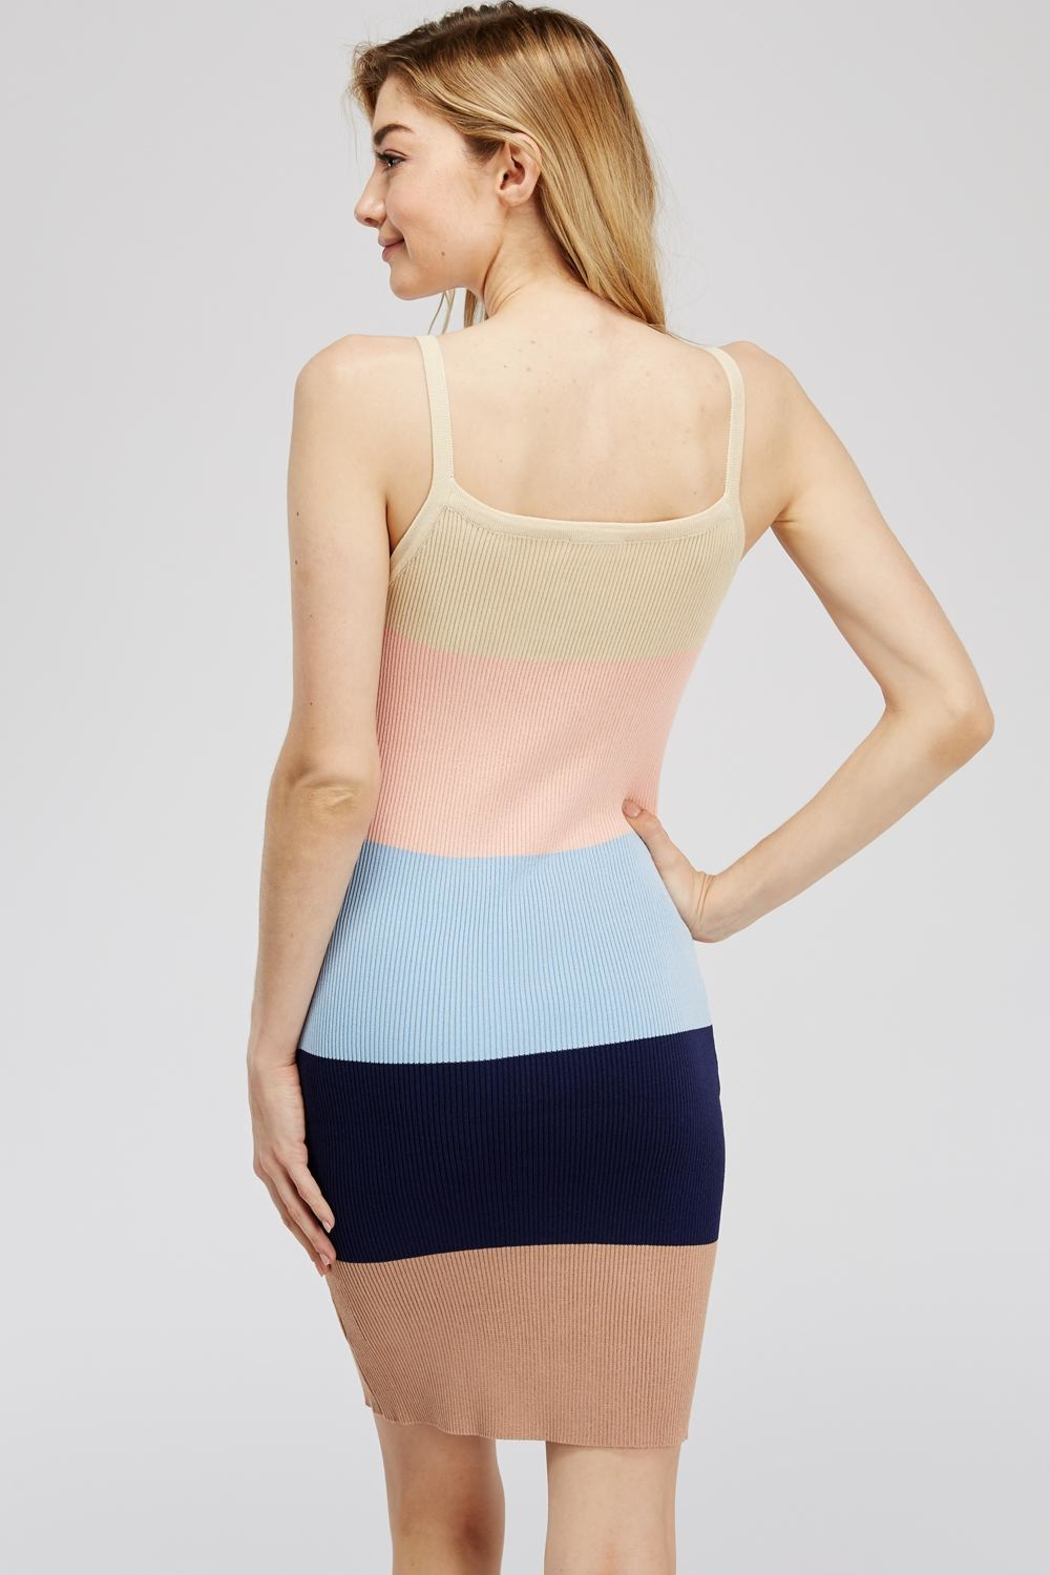 storia Colorful Knit Dress - Side Cropped Image